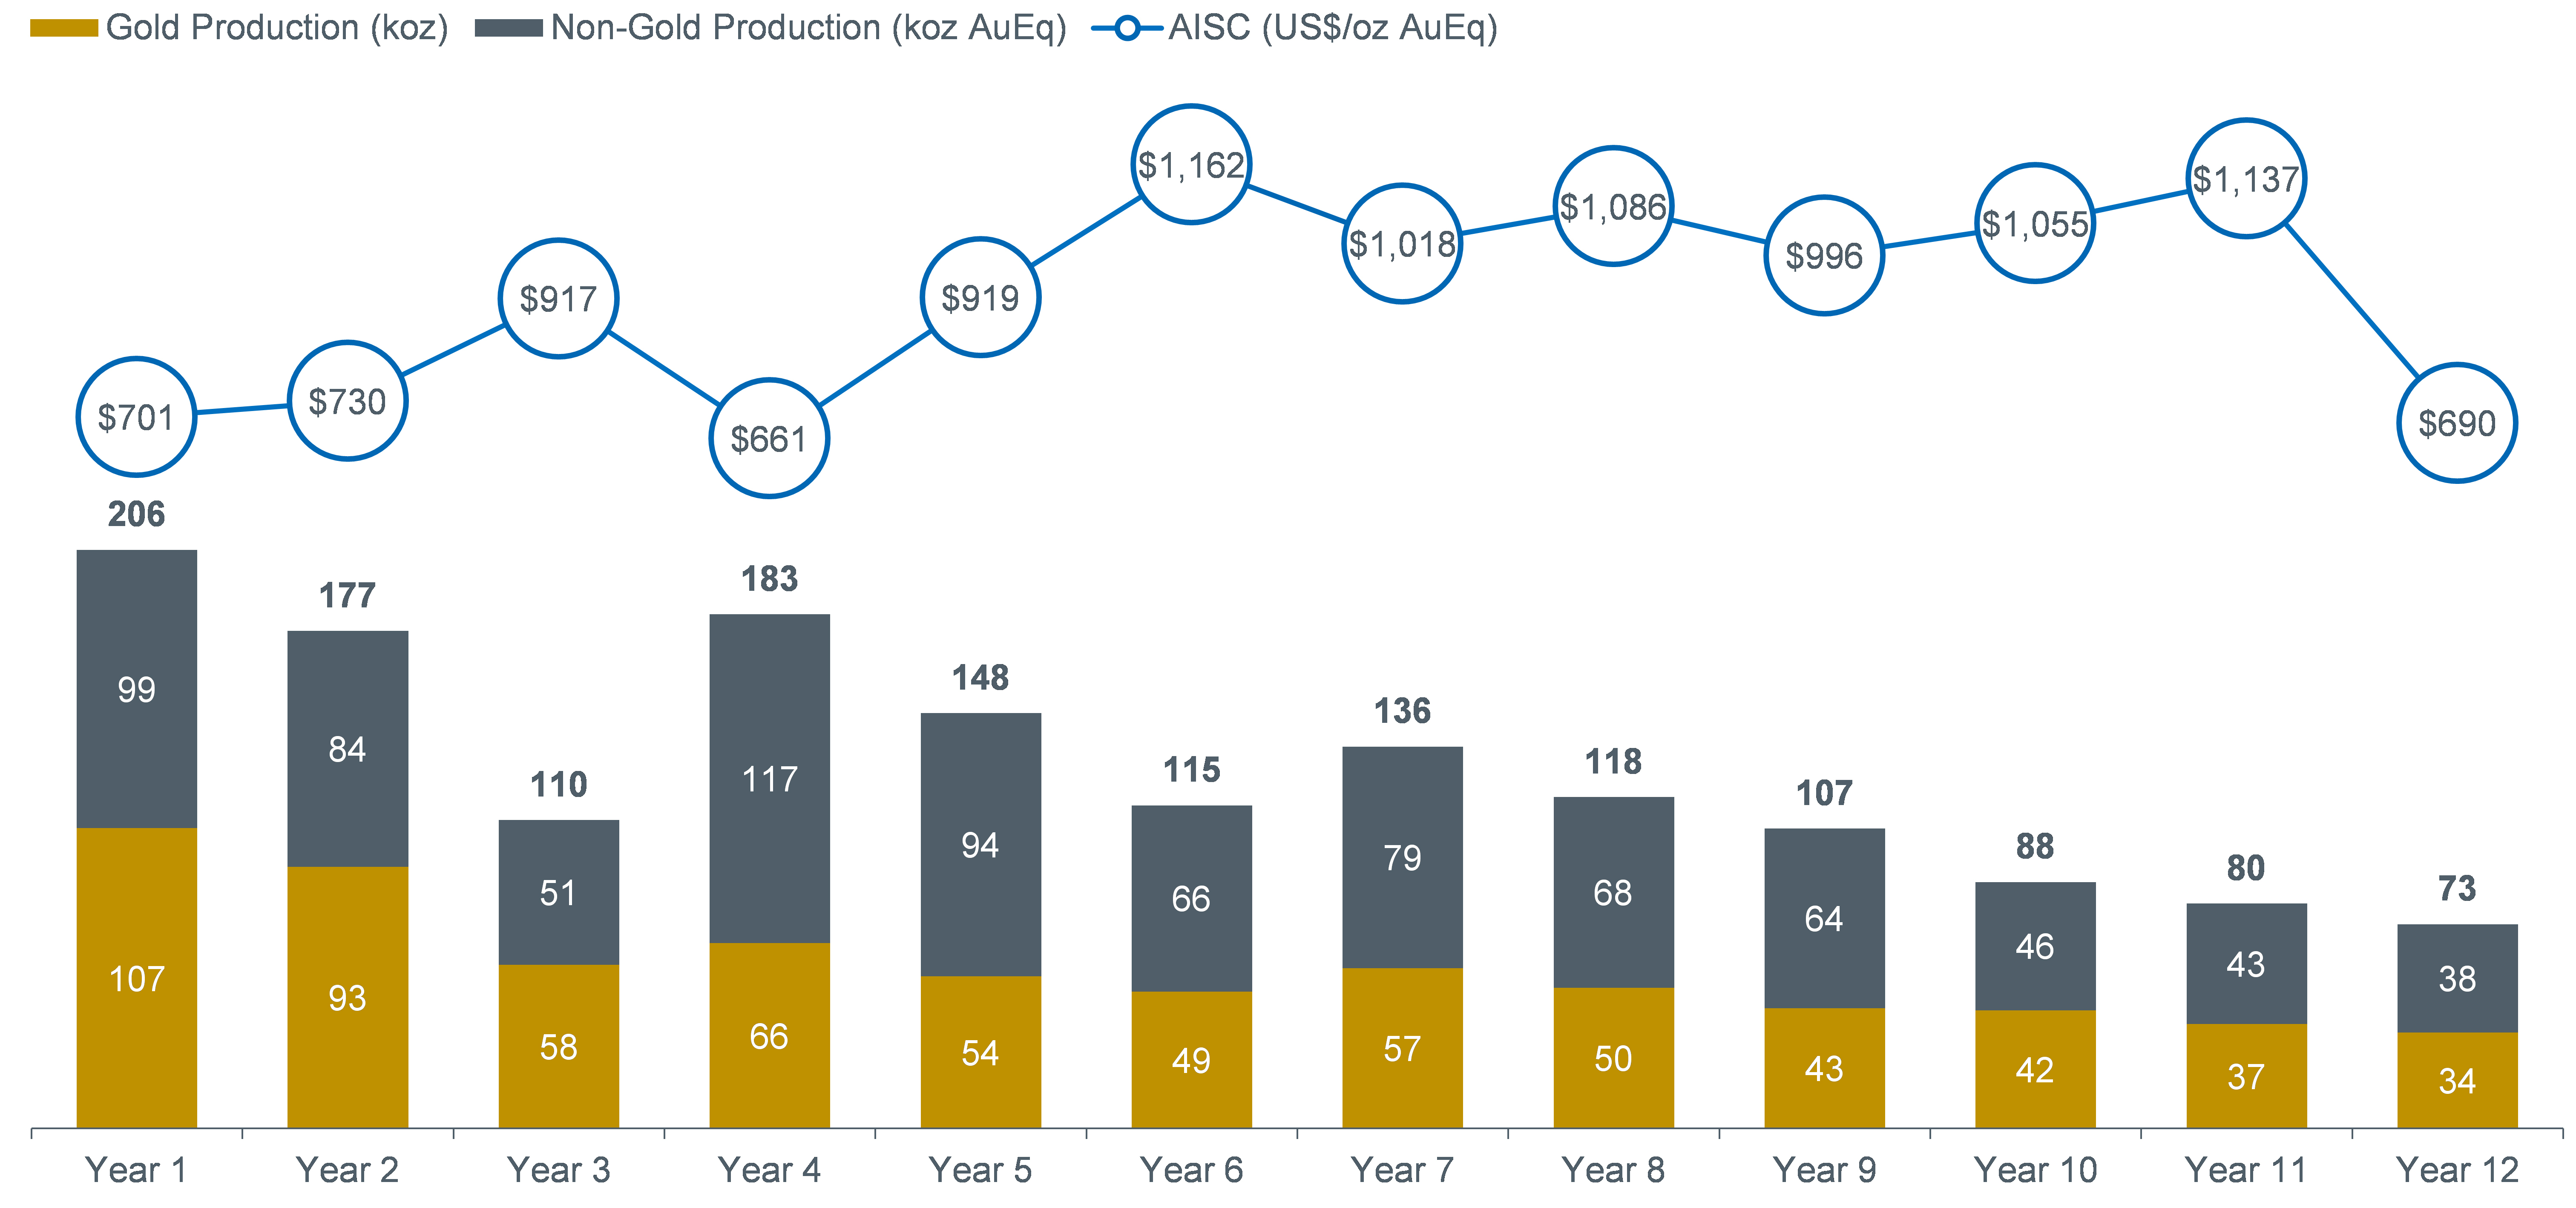 Figure 1: Production Profile - The production profile at Base Case metal prices is shown in Figure 1.